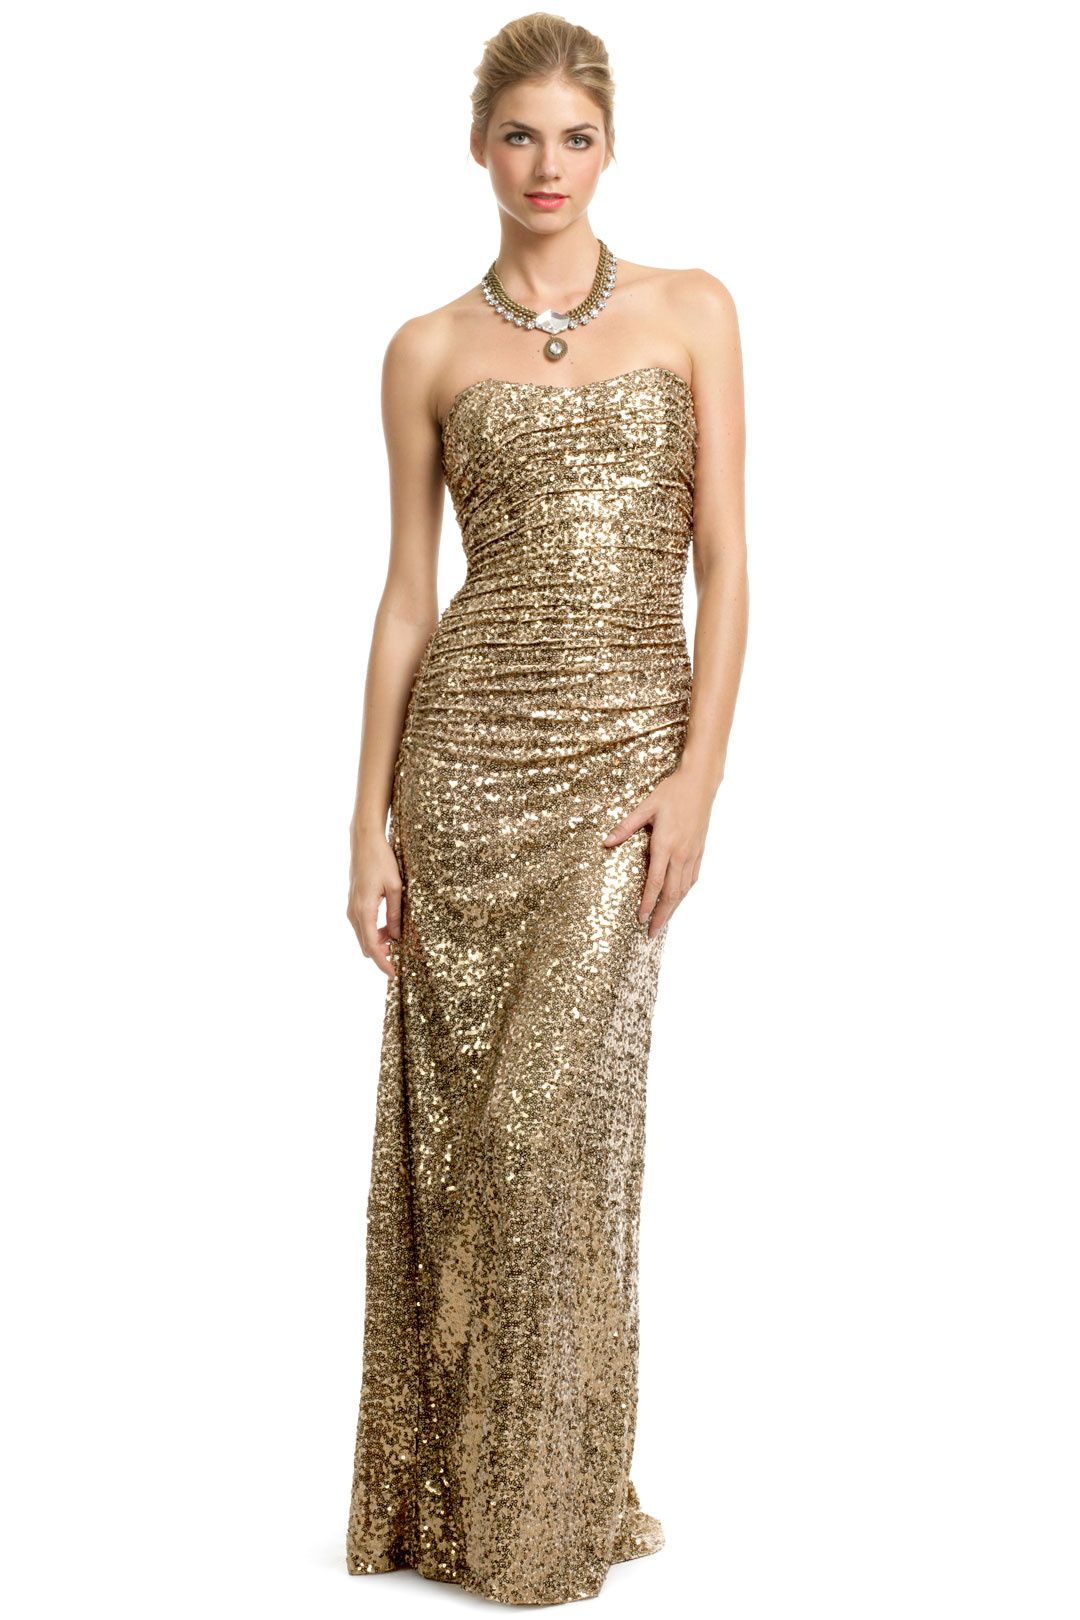 Gatsby style dress for rent